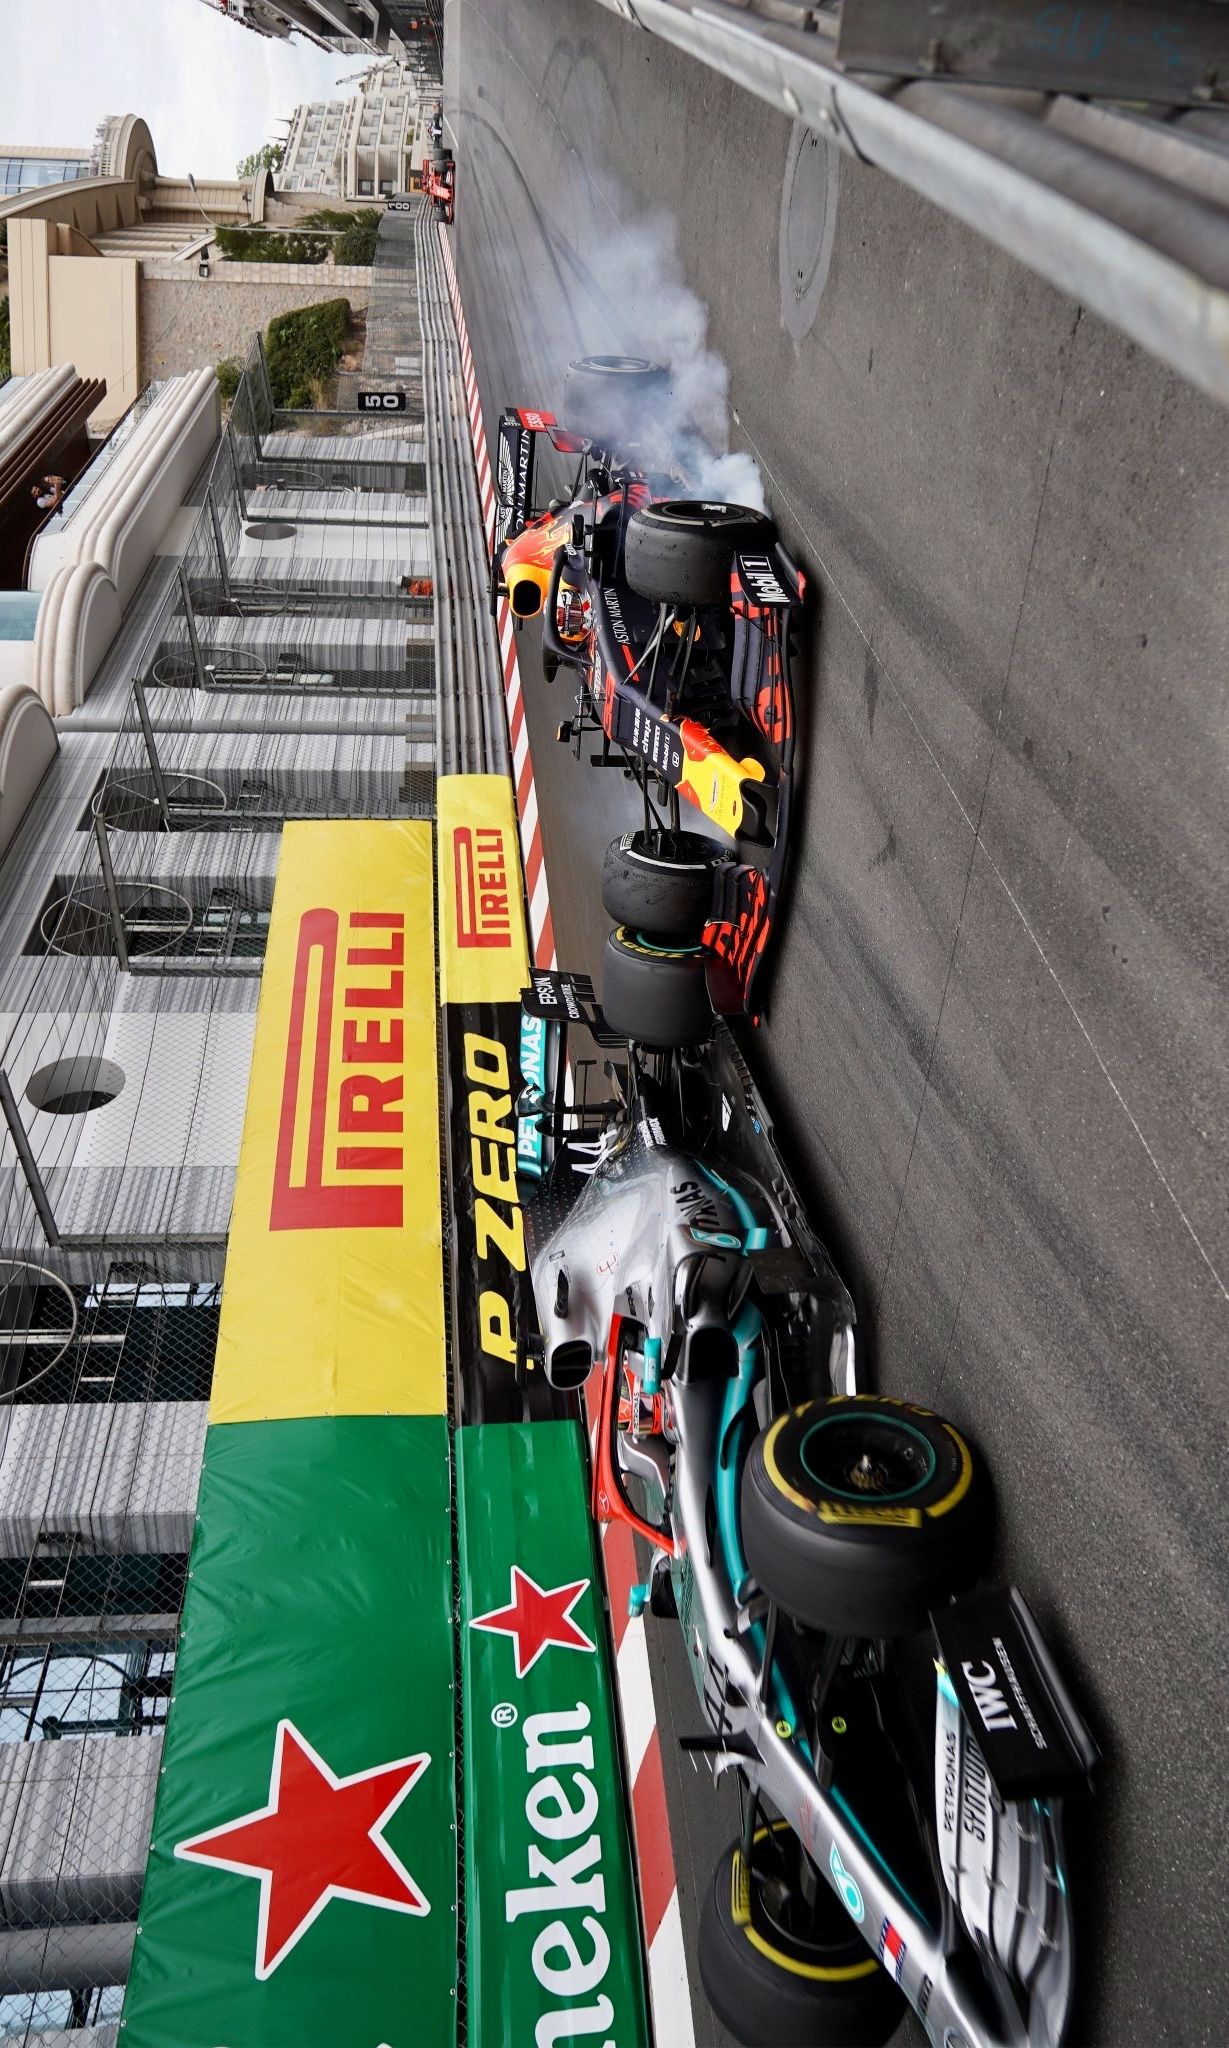 2019/5/27 TwitterF1 Lap 77 of 78 One of those 'hold